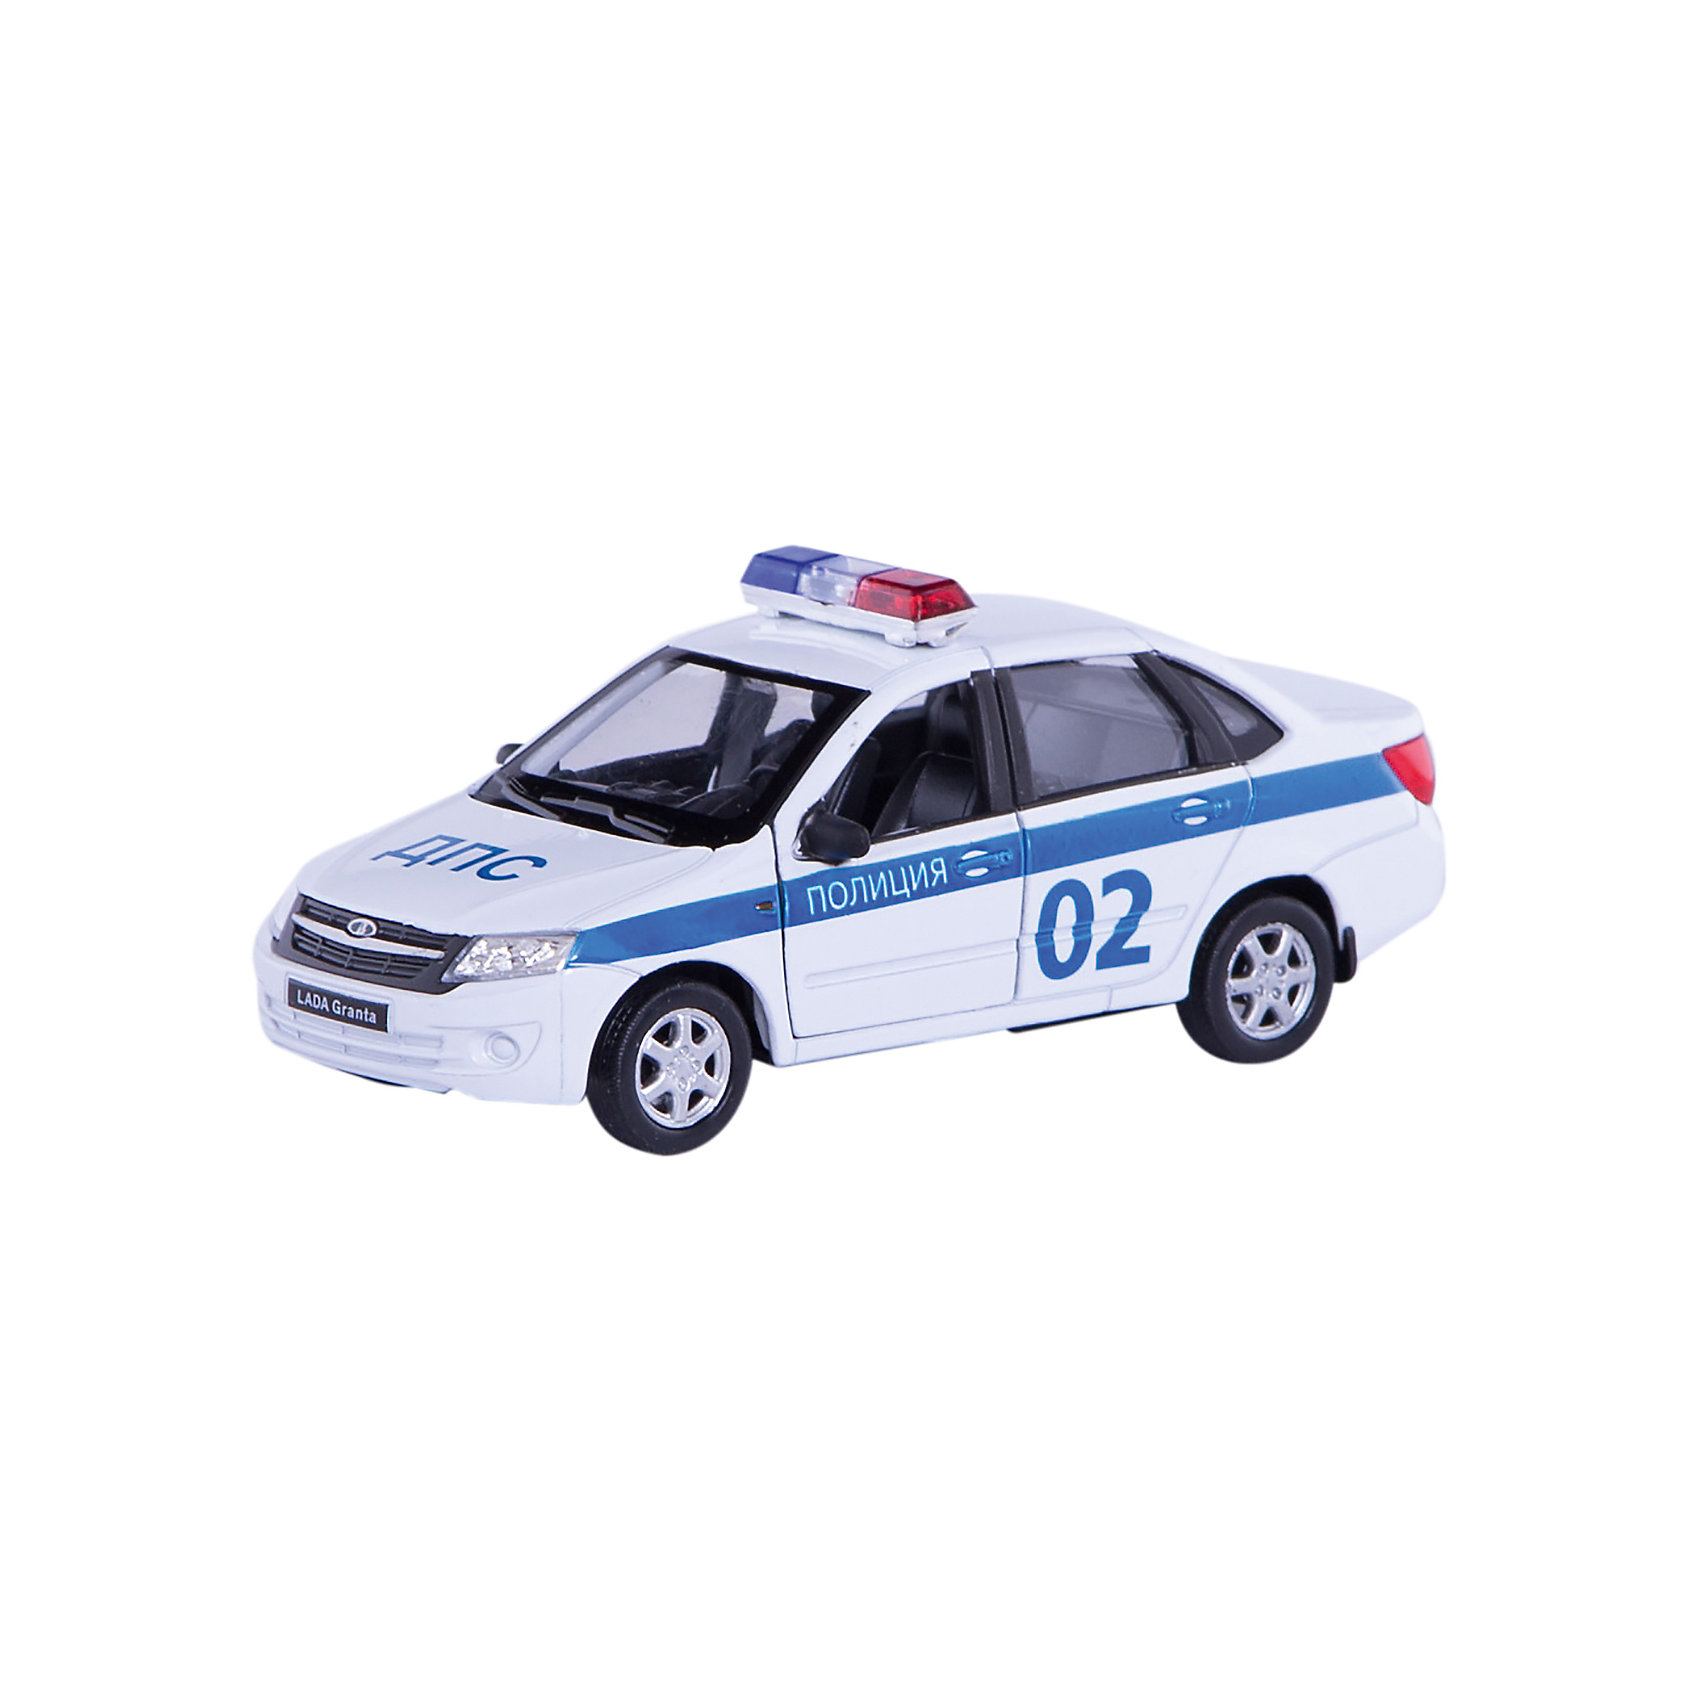 Welly Модель машины 1:34-39 LADA Granta Полиция, Welly модель машины welly lada granta rally 1 34 39